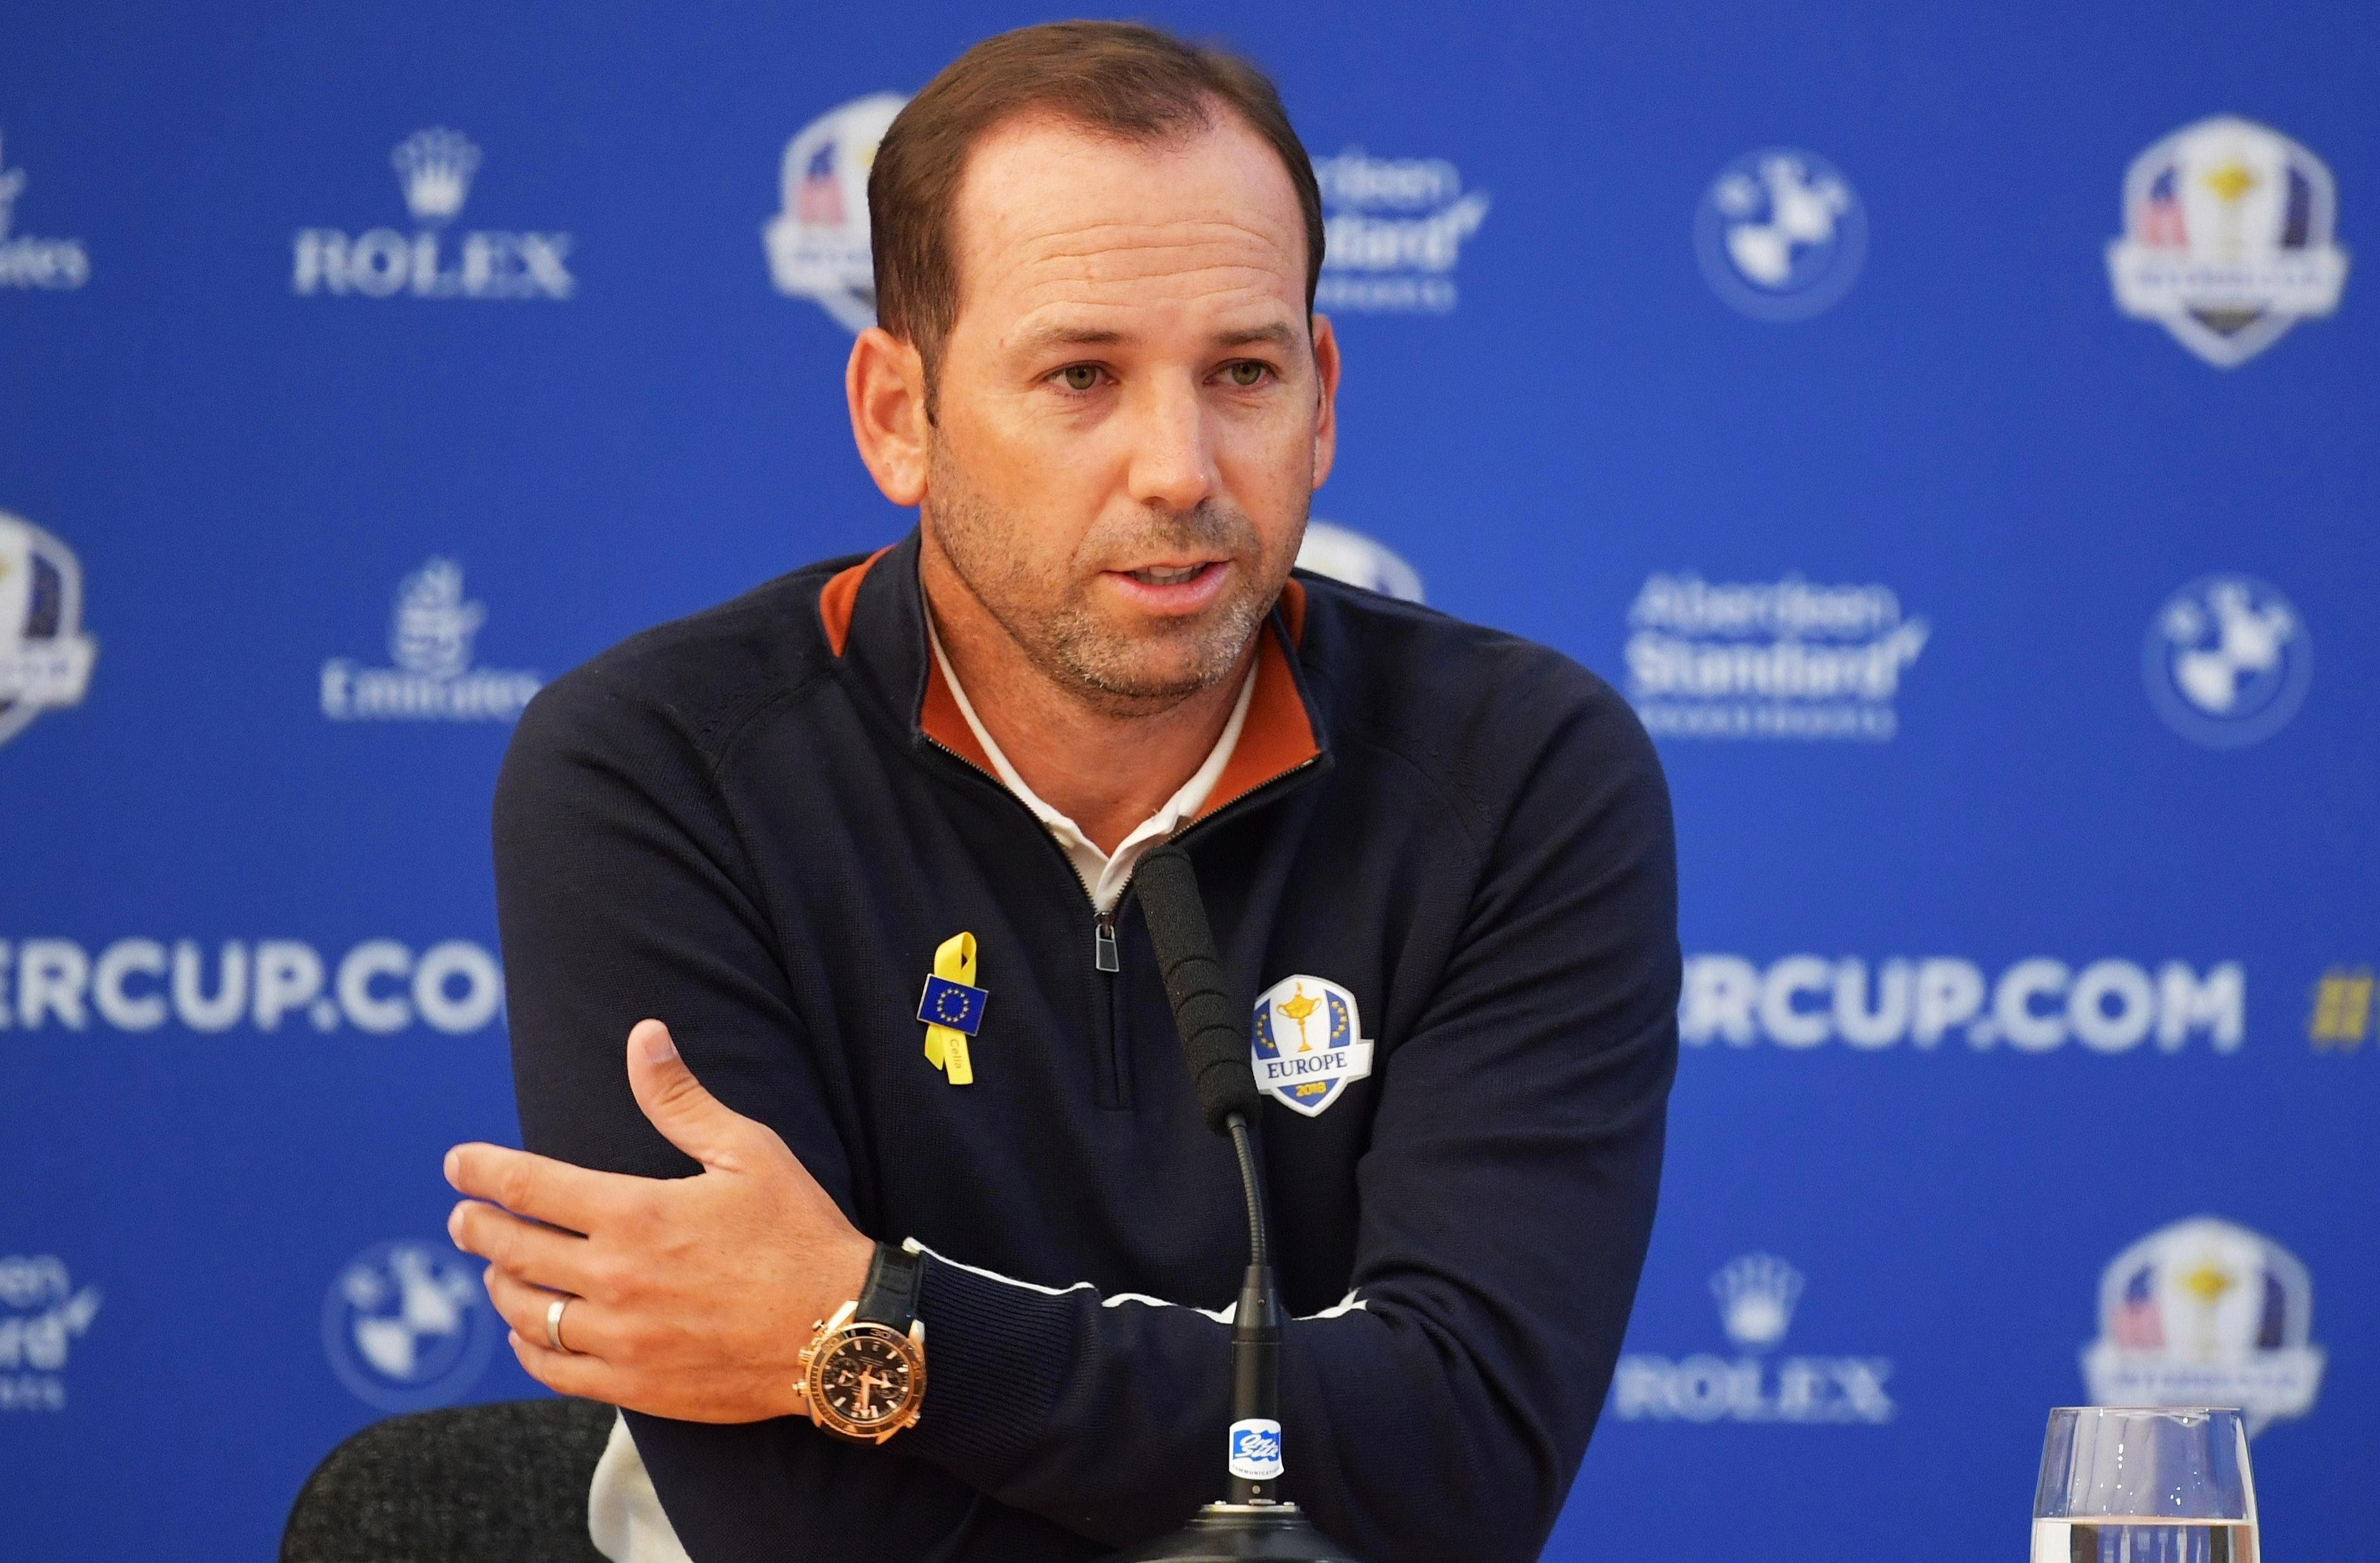 Sergio Garcia has vowed to win the Ryder Cup for murdered Celia Barquin Arozamena